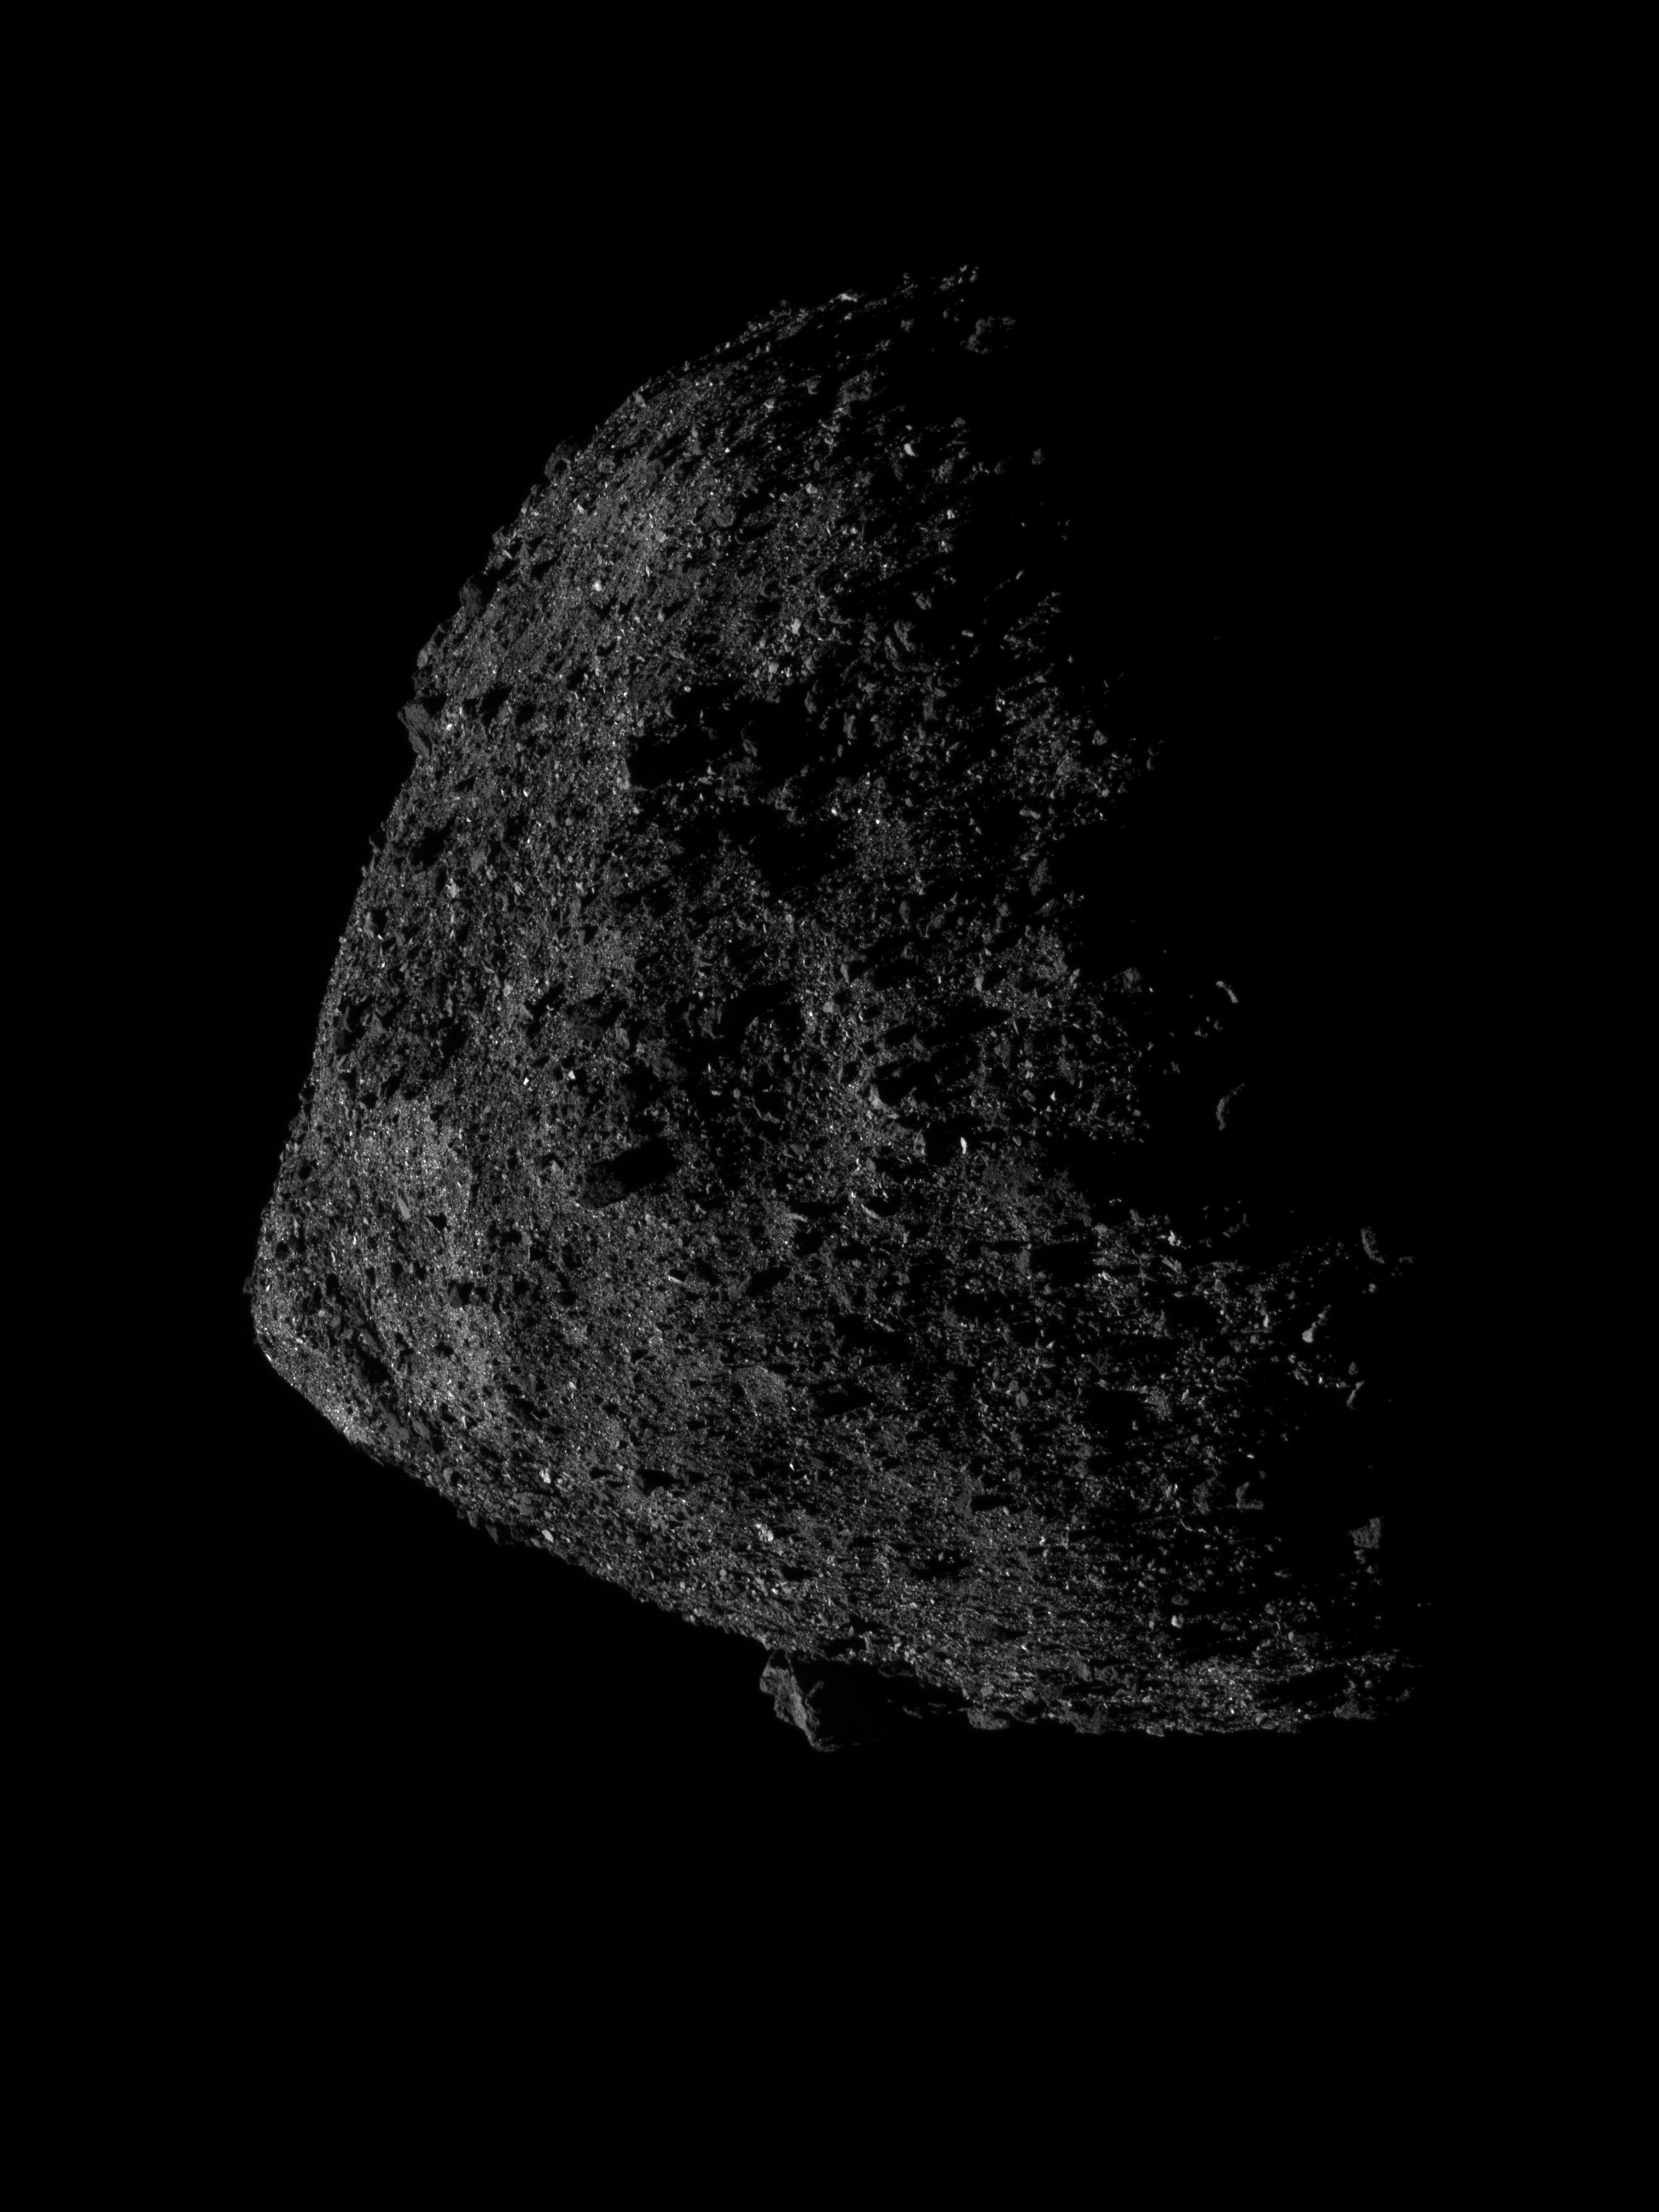 NASA Just Took a Breathtakingly Close Photo of This Asteroid